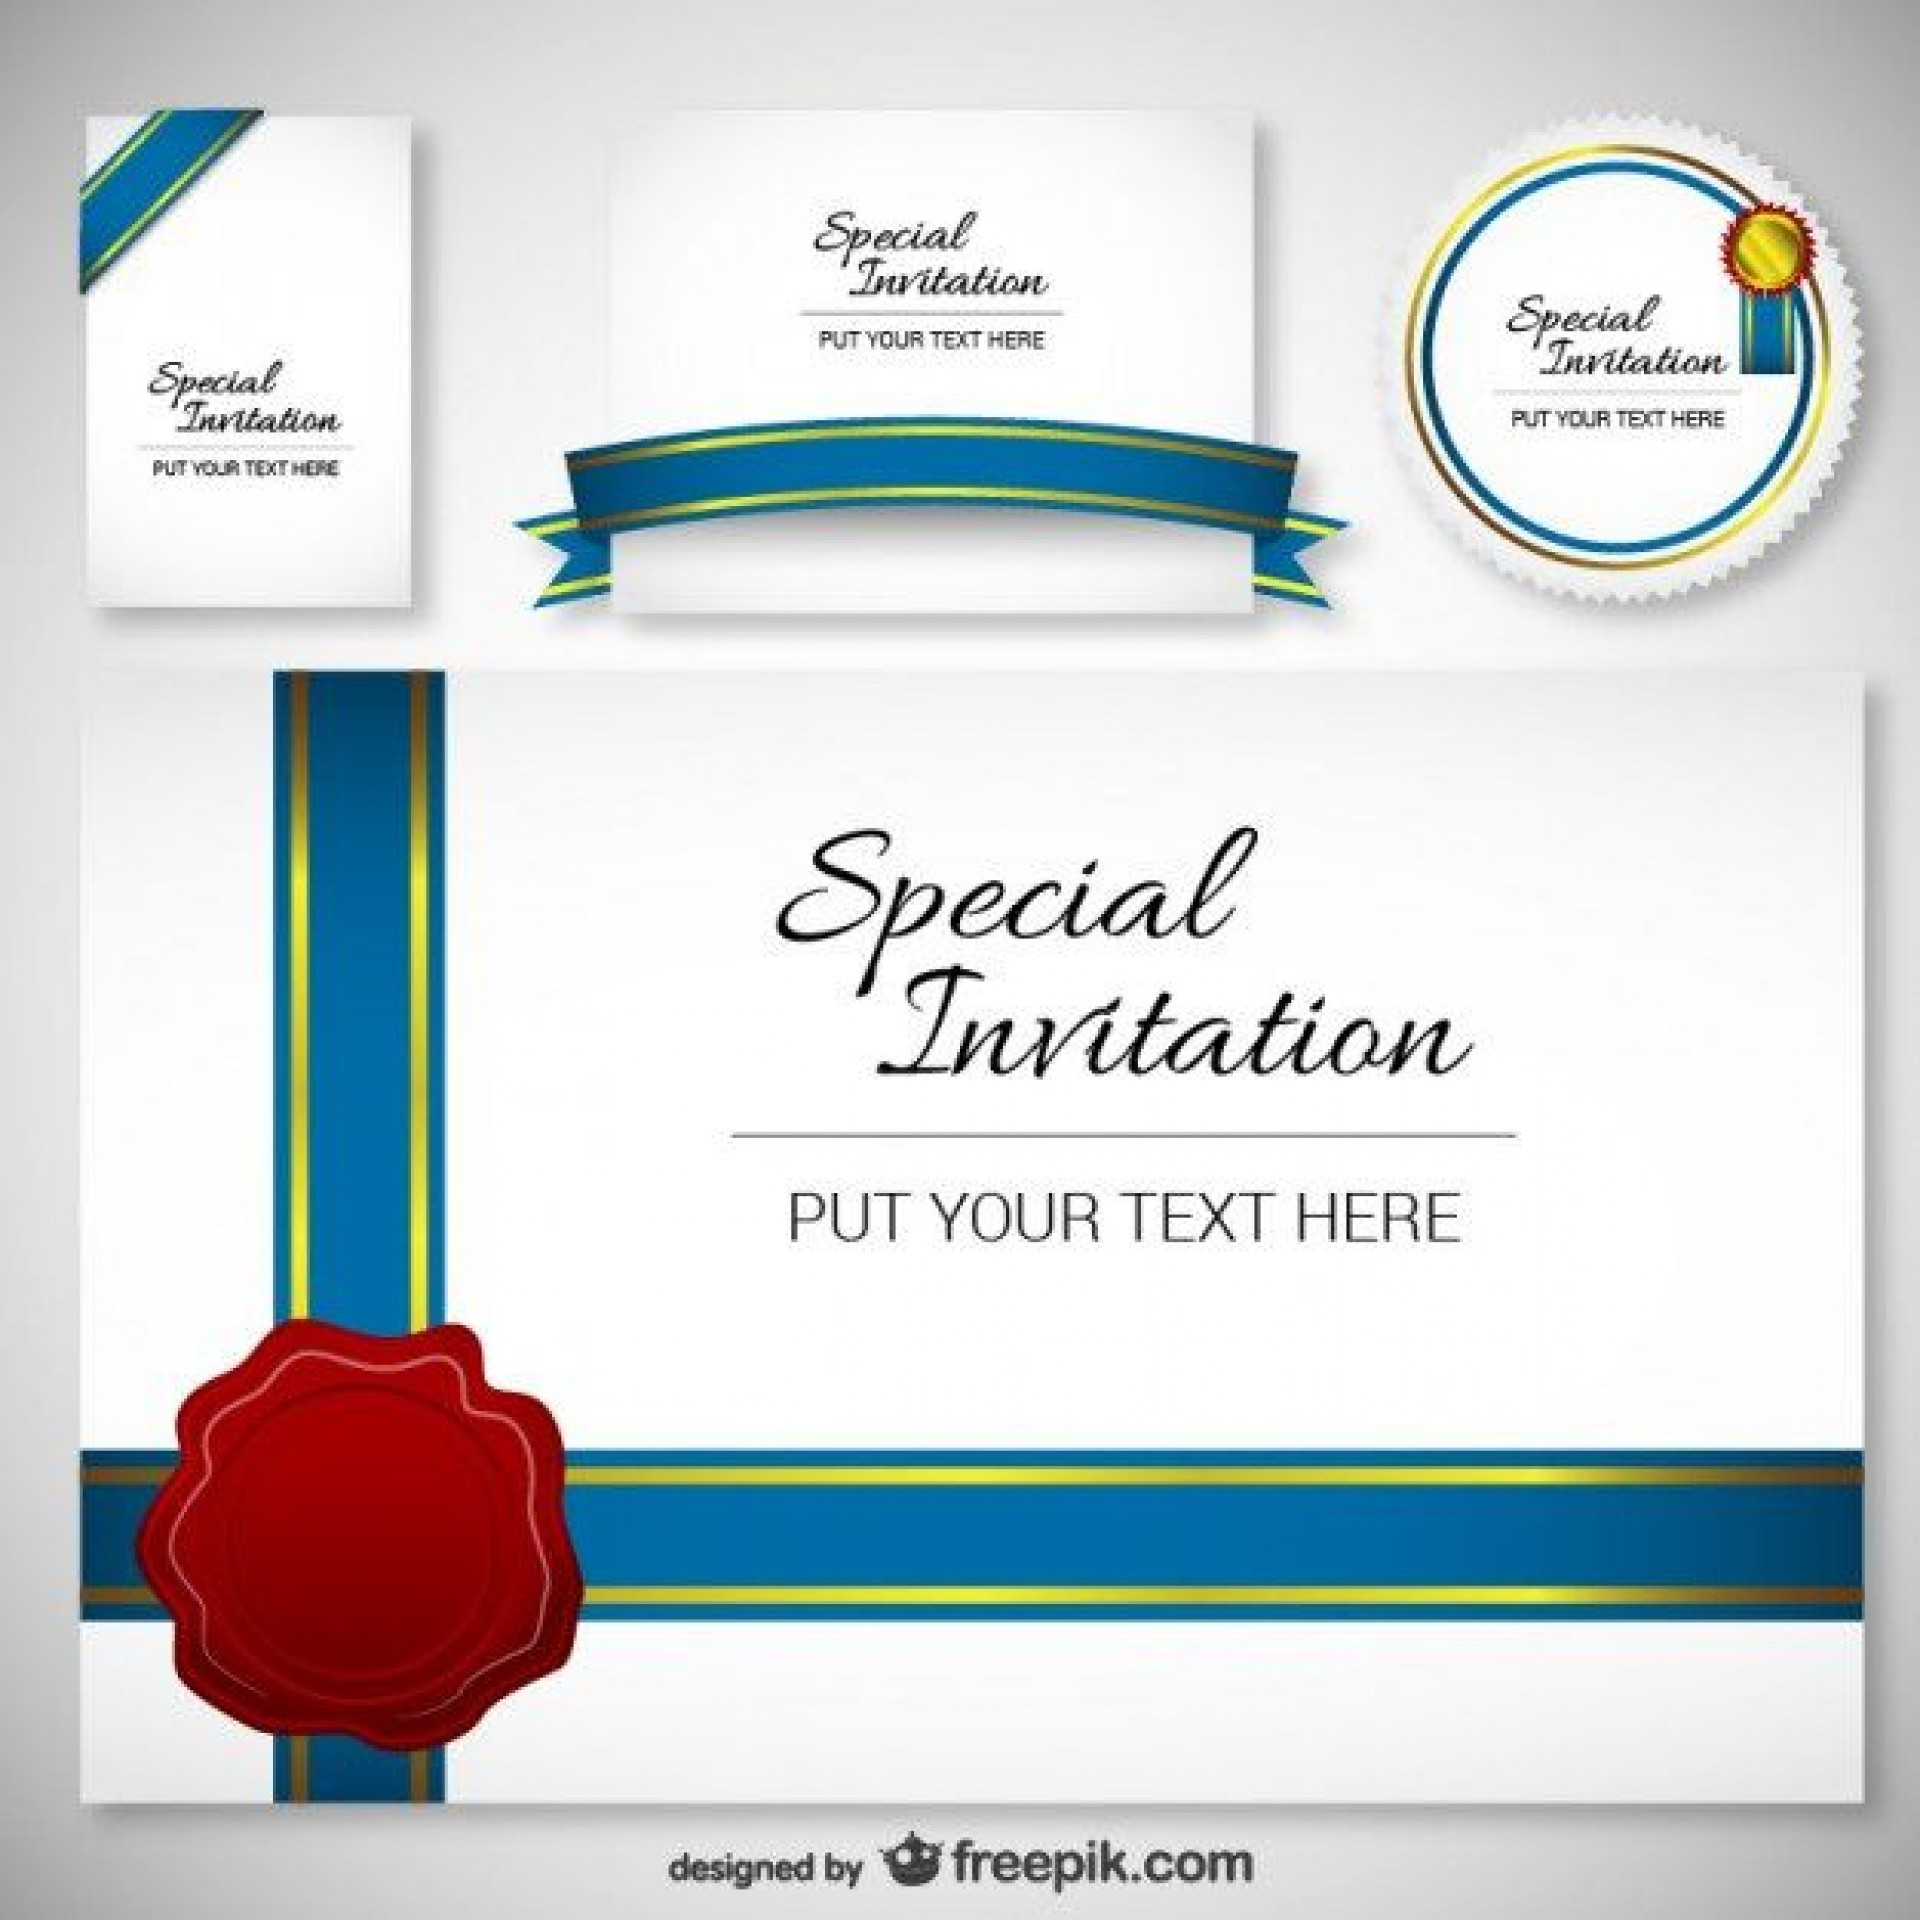 005 Surprising Free Download Invitation Card Design Photo  Birthday Party Blank Wedding Template Software1920